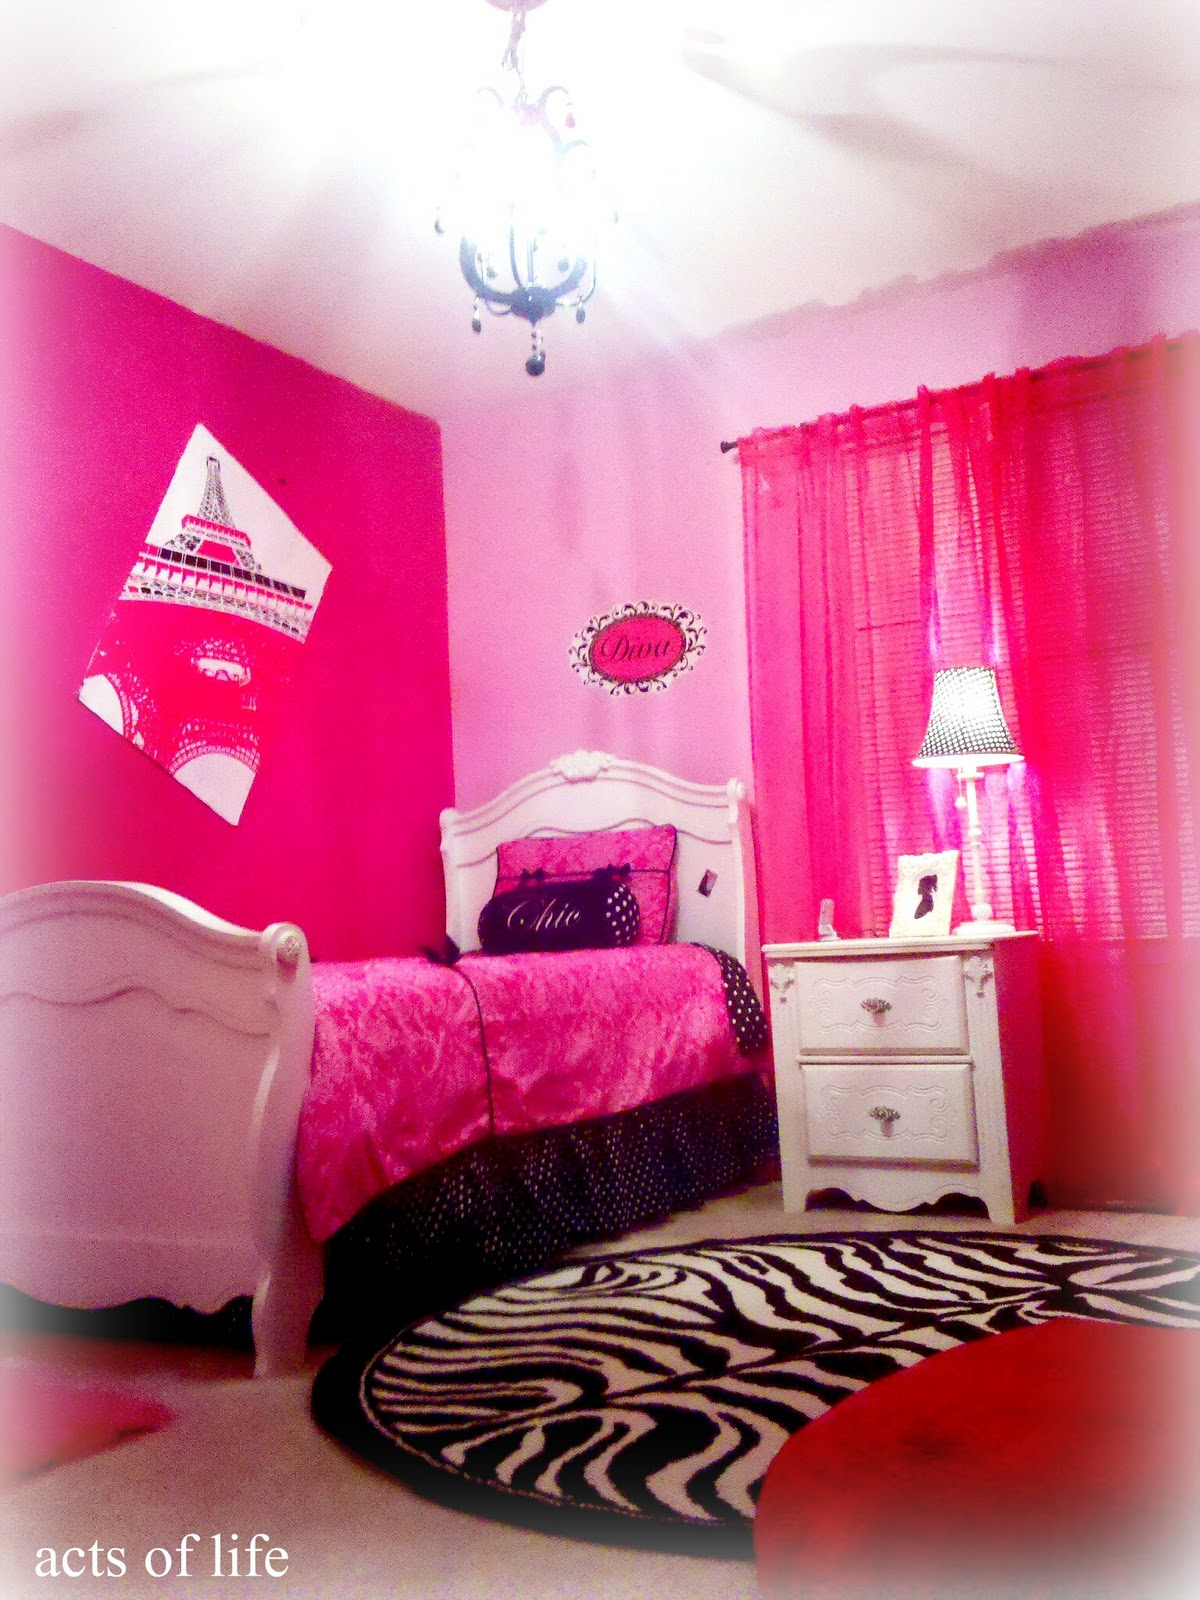 Dark Pink Bedroom Hot Pink And Black Room Hot Pink Bedroom